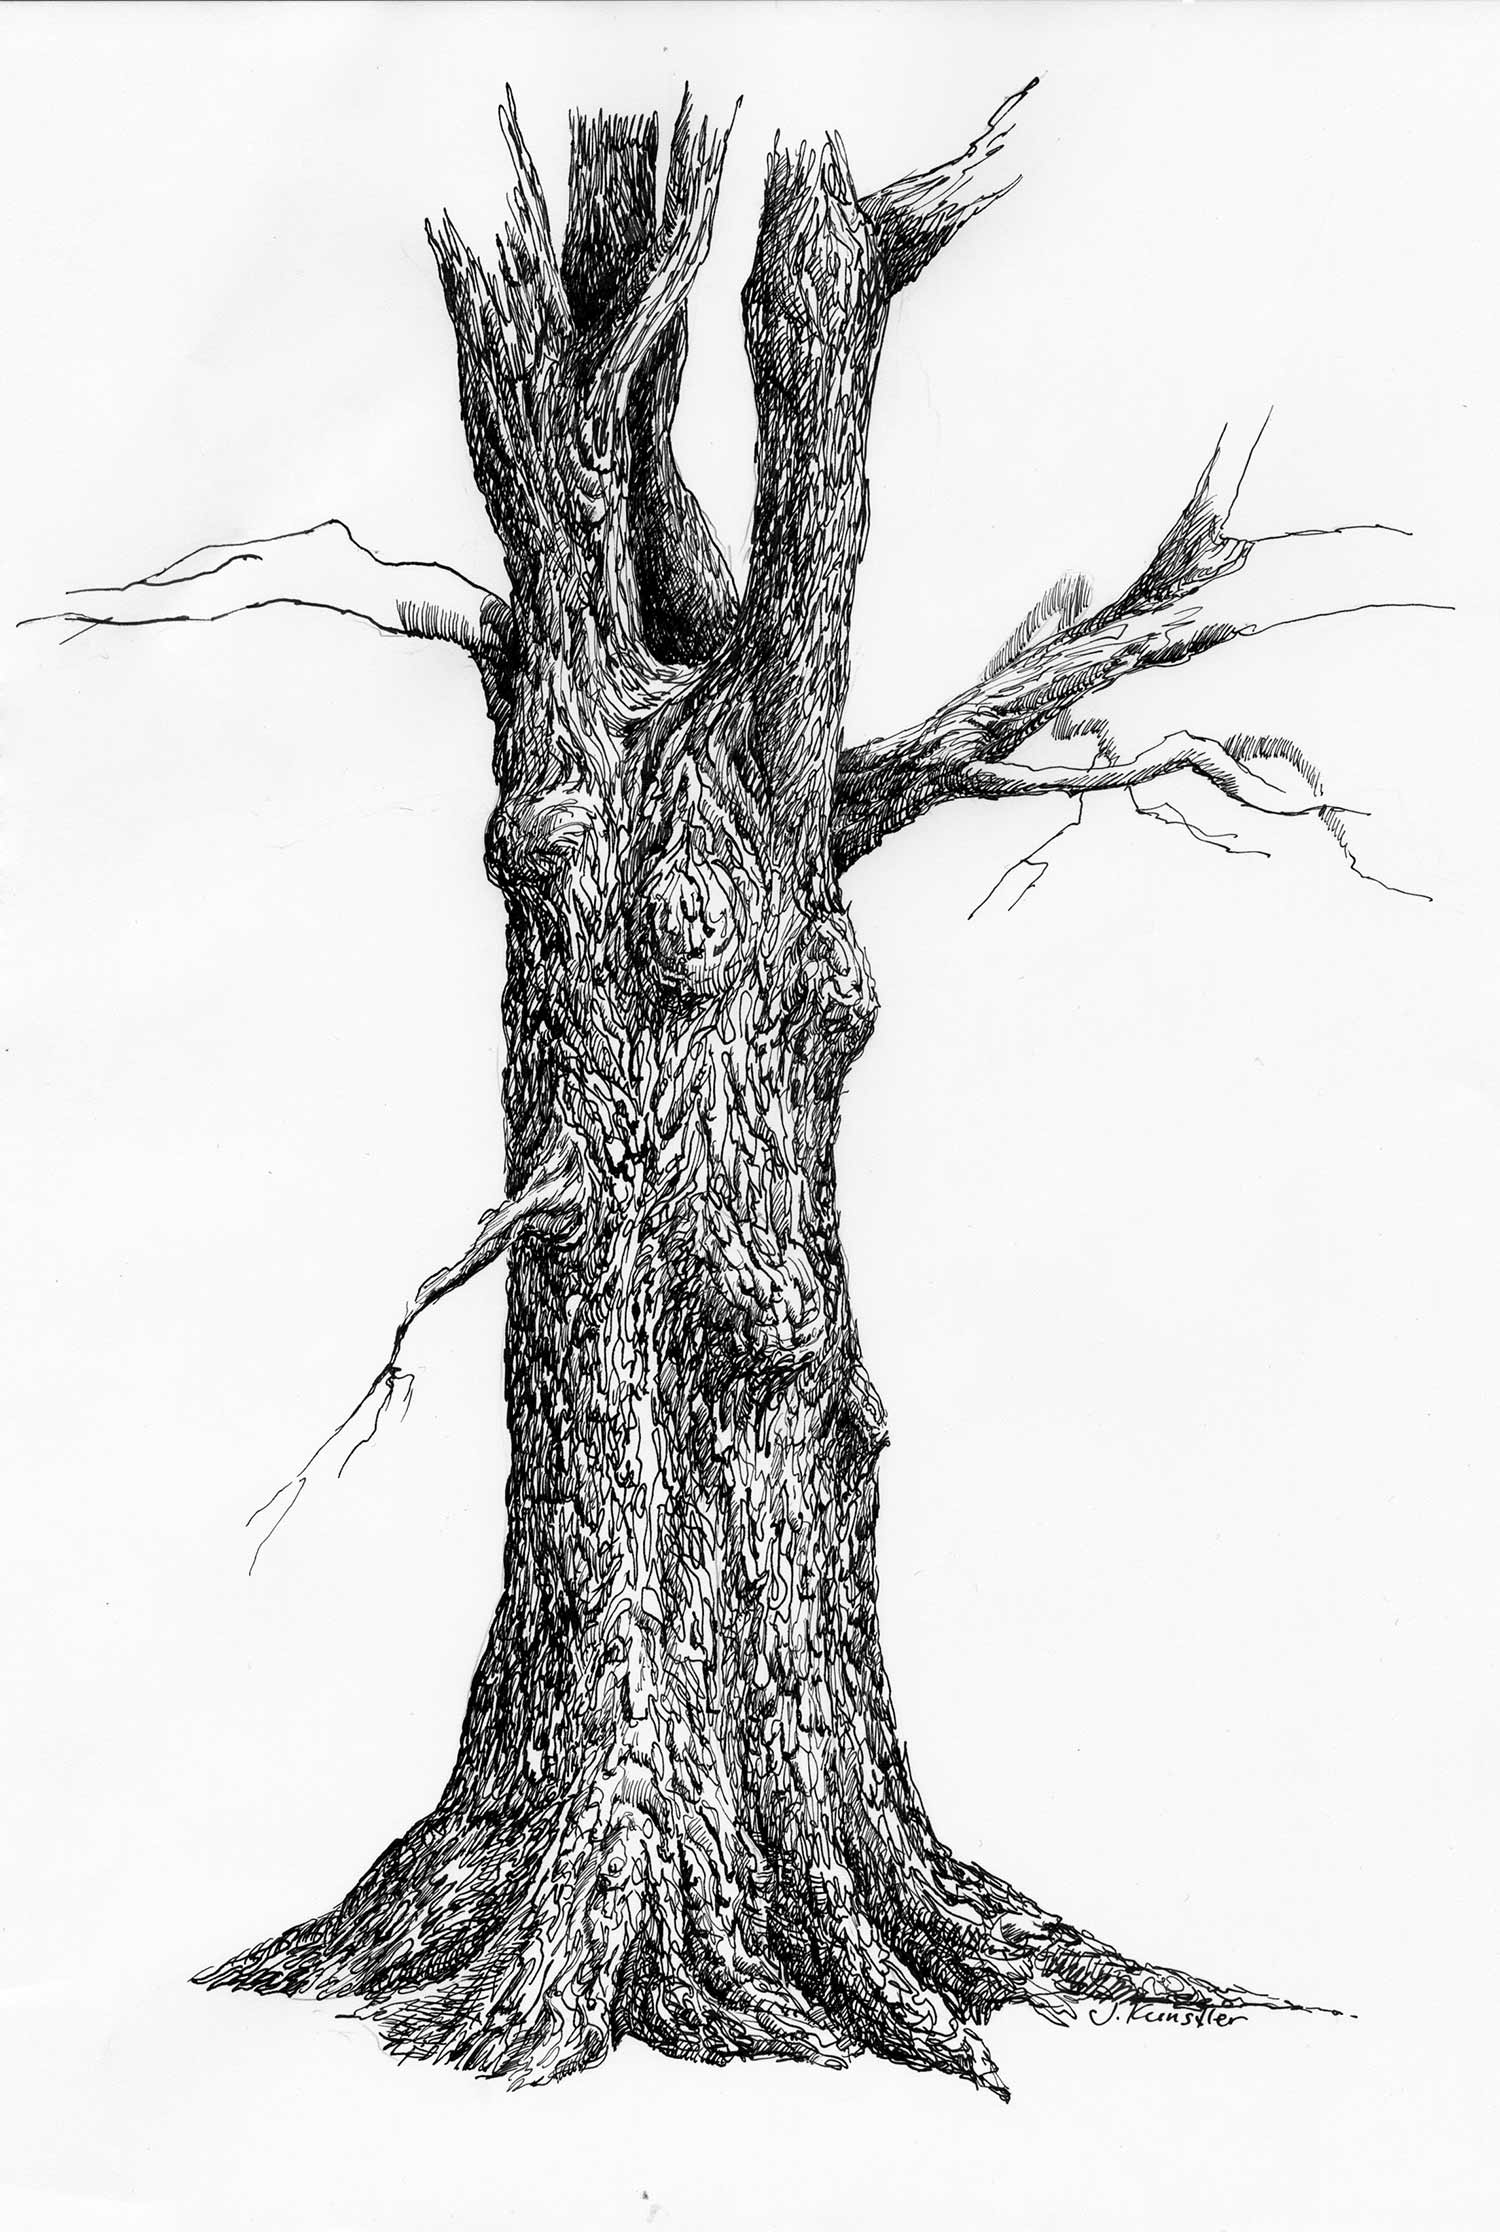 Tree. Pen and ink drawing steps.